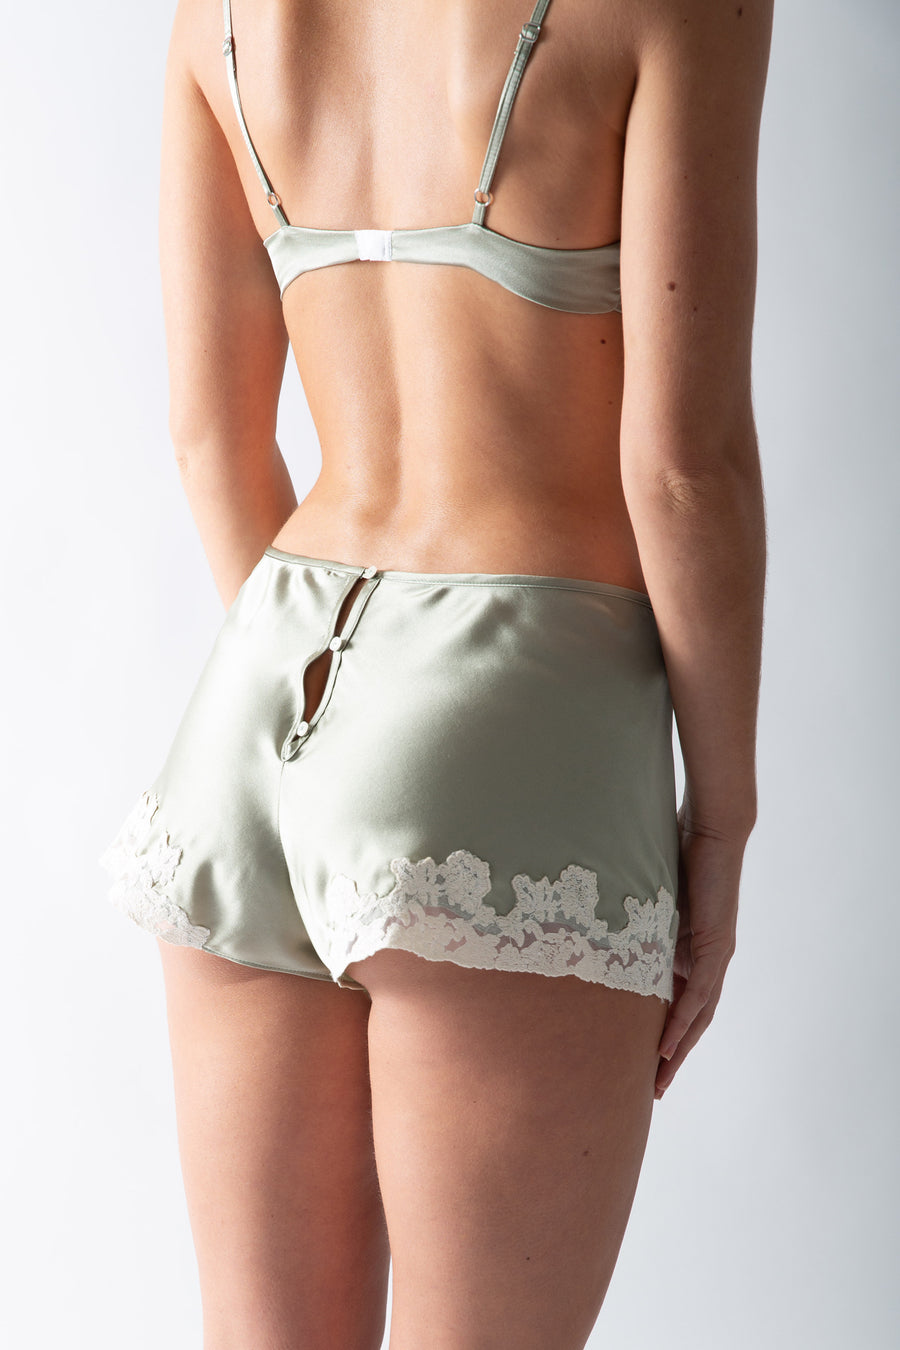 This is a back view photo of a woman wearing a sage colored silk set of mini shorts and bralette with lace trim. The shorts have 3 button closure up the center back.